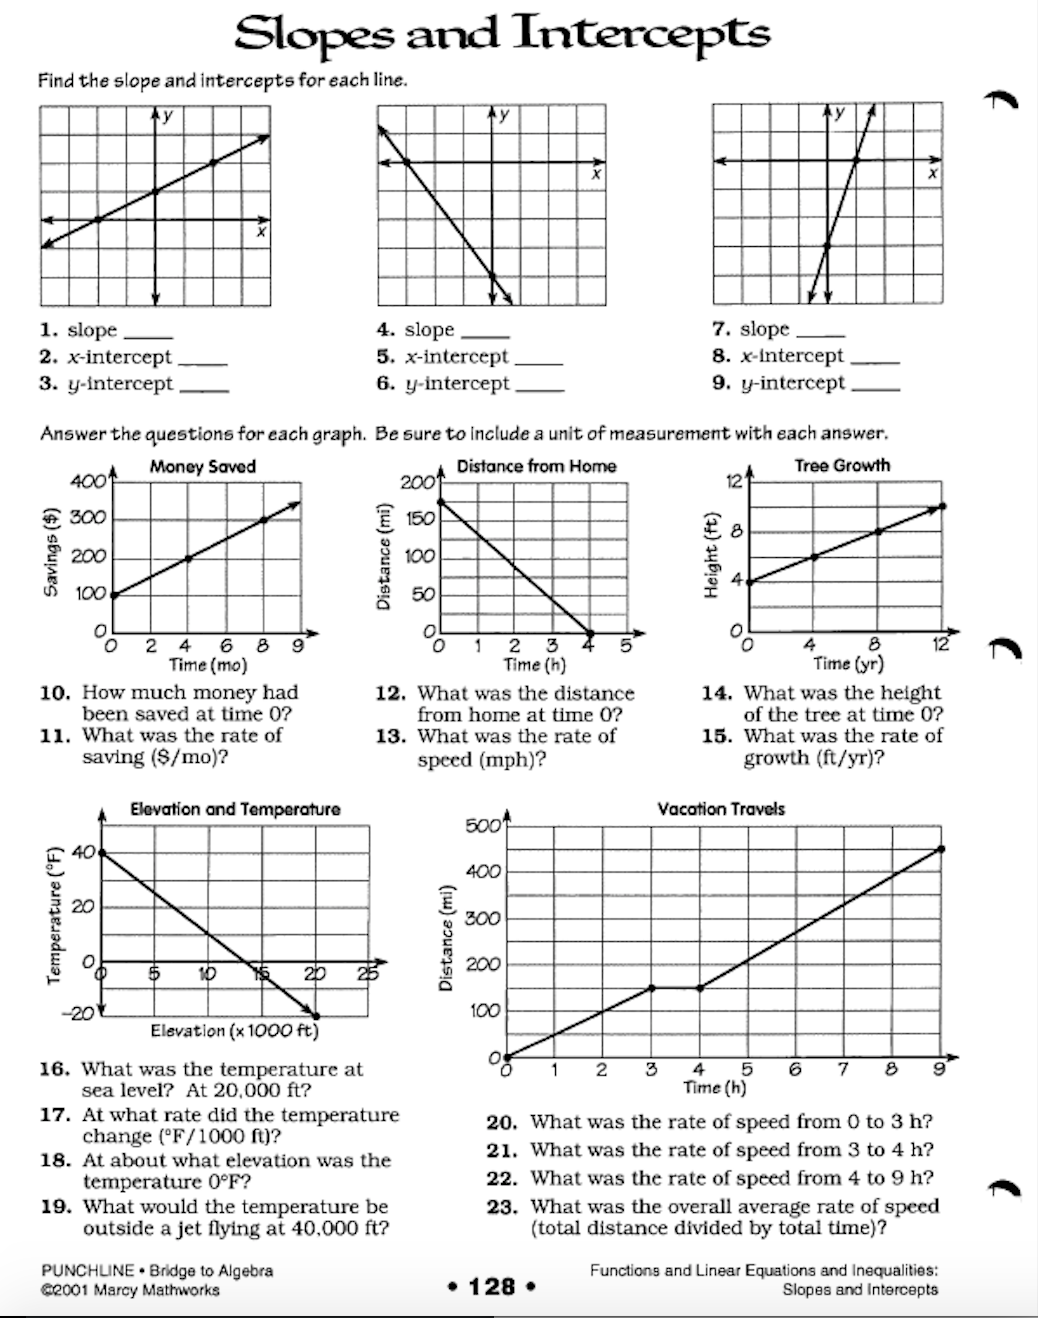 Worksheets What Do You Call A Duck That Steals Worksheet Answers what do you call a duck that steals worksheet livinghealthybulletin linear equations algebra